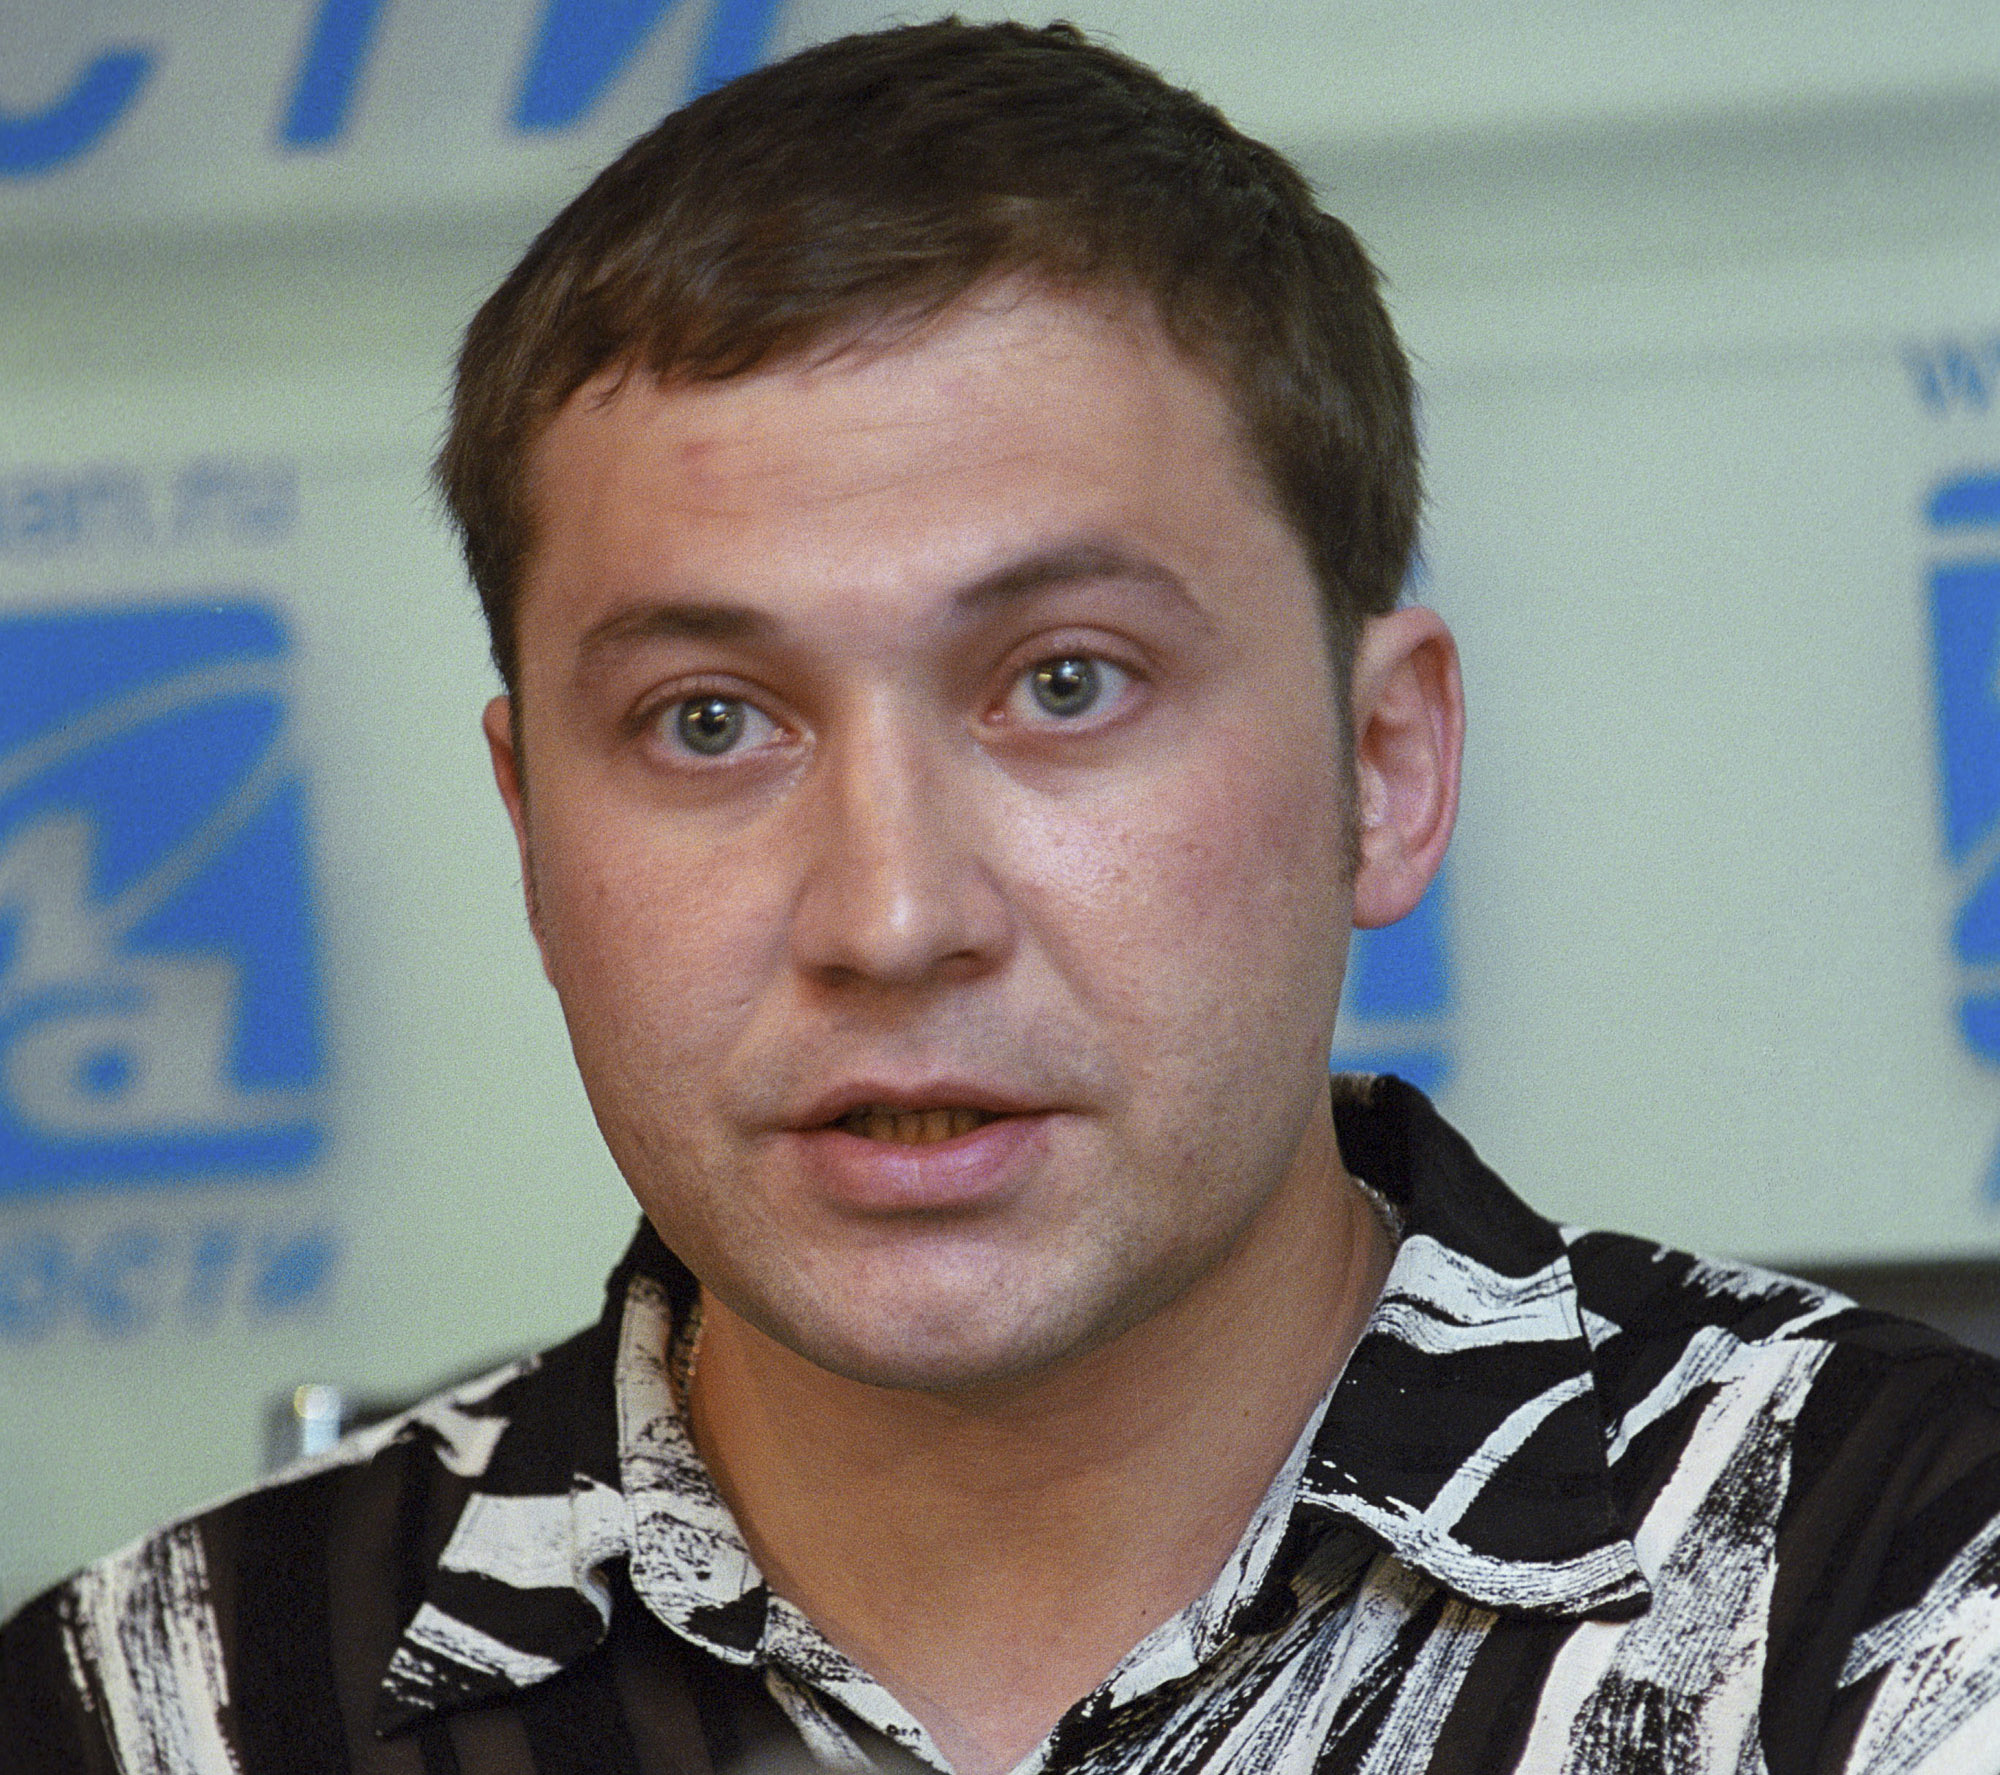 FILE - Russian Muslim Airat Vakhitov speaks at a news conference in Moscow, June 28, 2005.